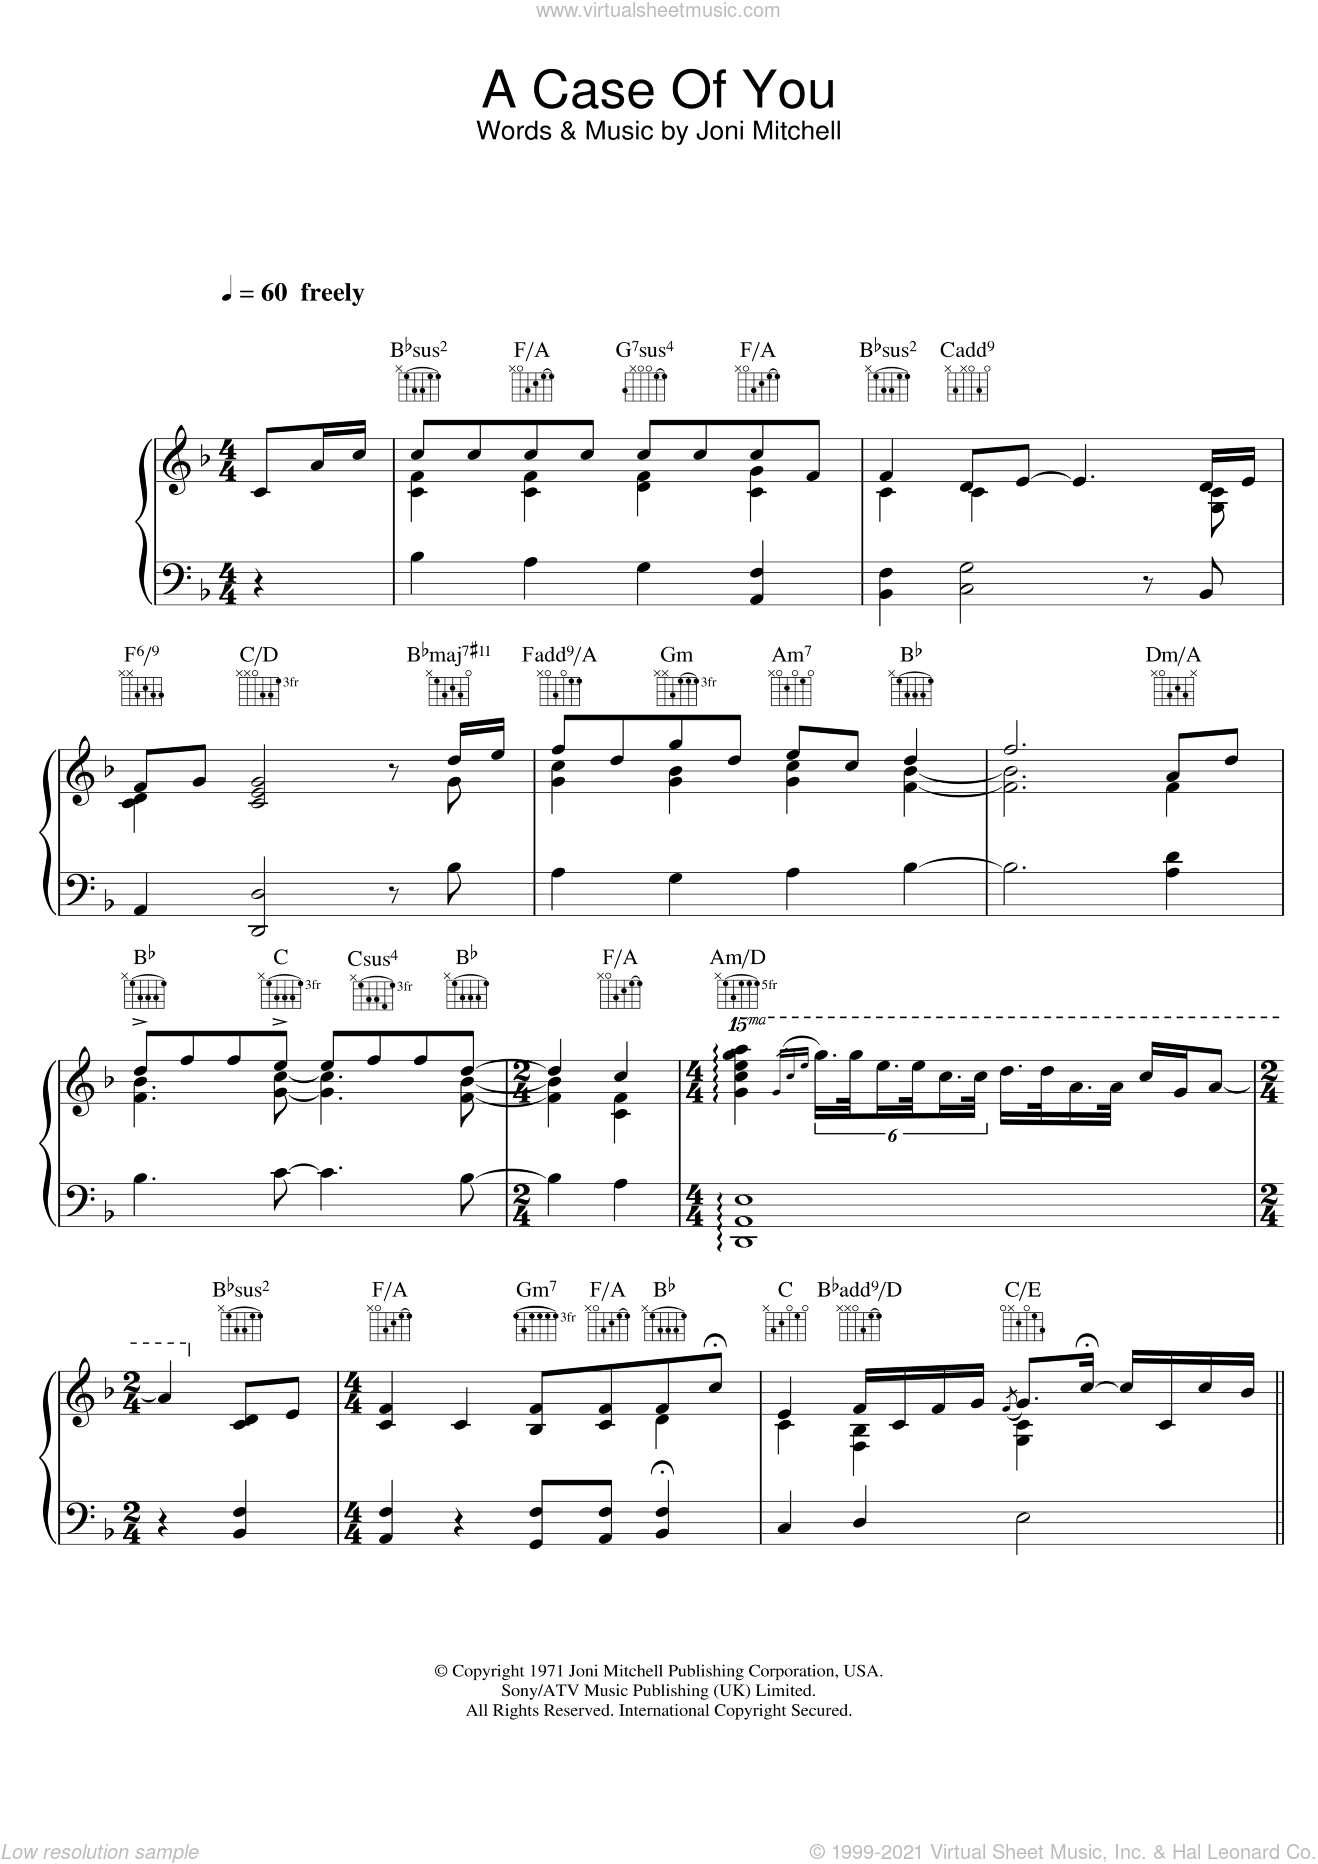 A Case Of You sheet music for voice, piano or guitar by Diana Krall and Joni Mitchell, intermediate skill level